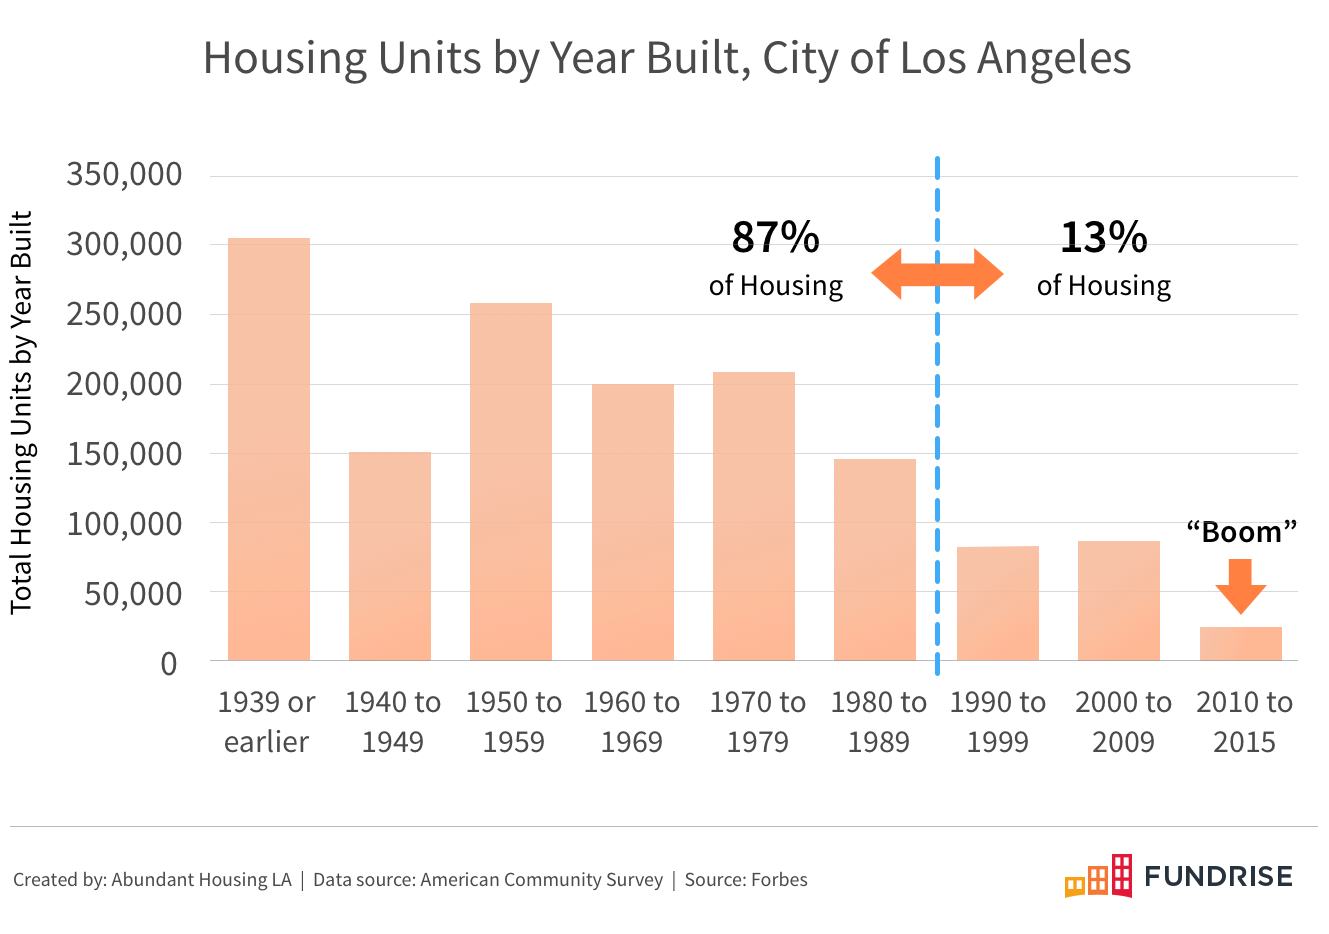 los-angeles-housing-built-1939-to-2015